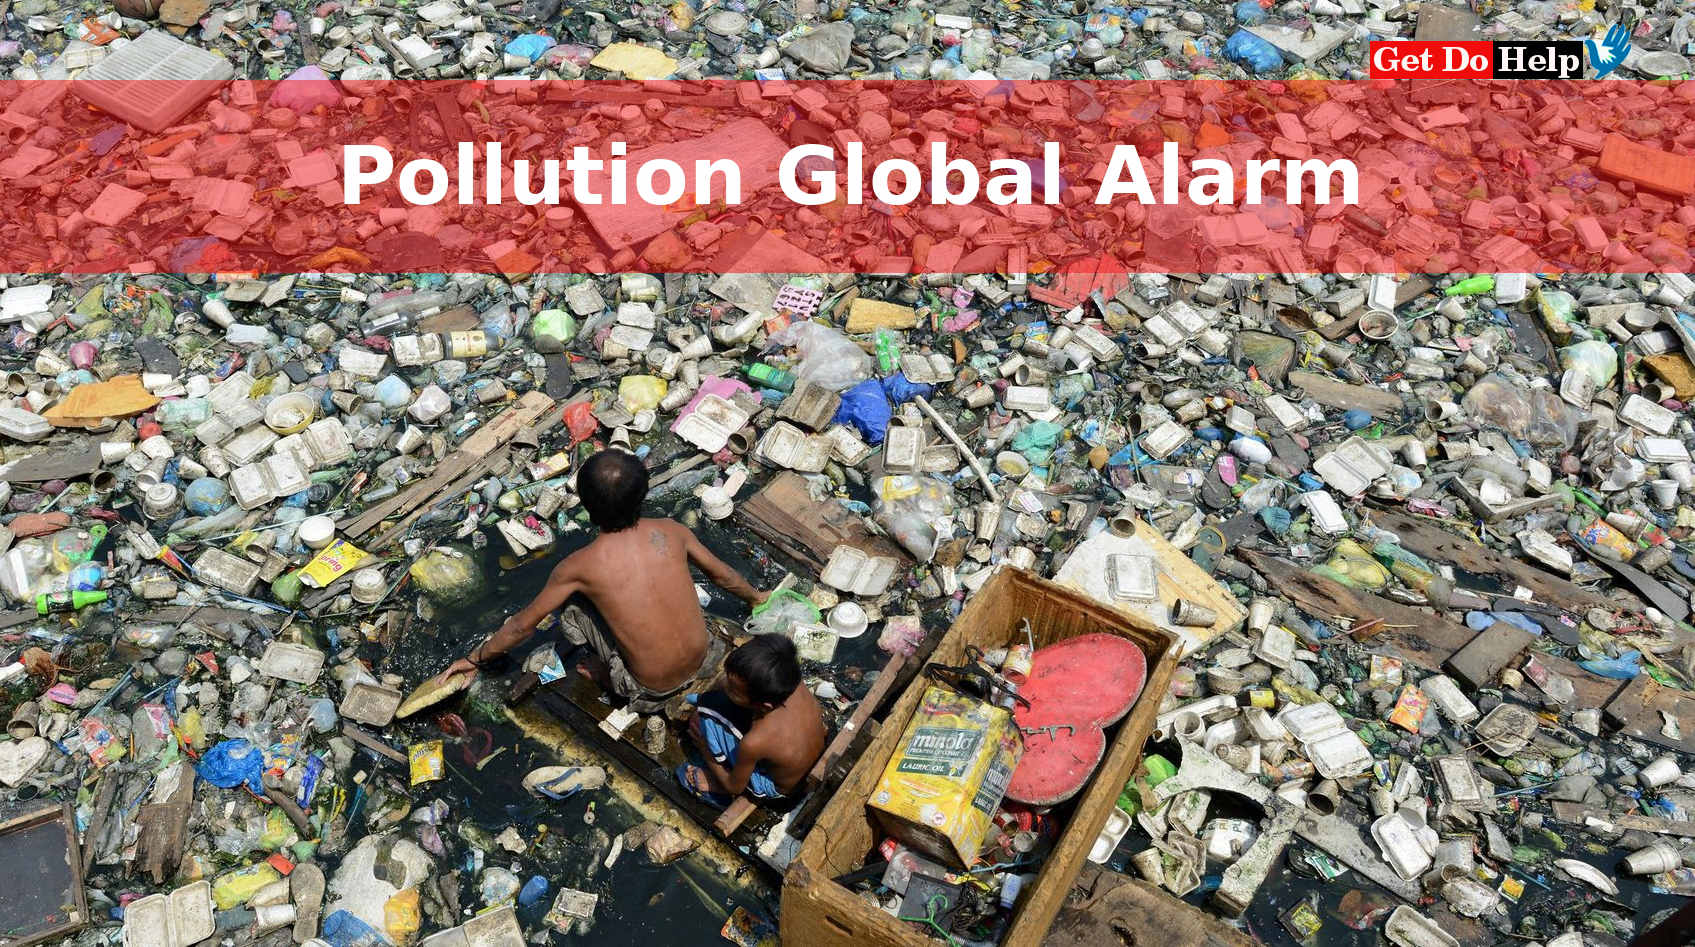 Pollution - Global Alarm